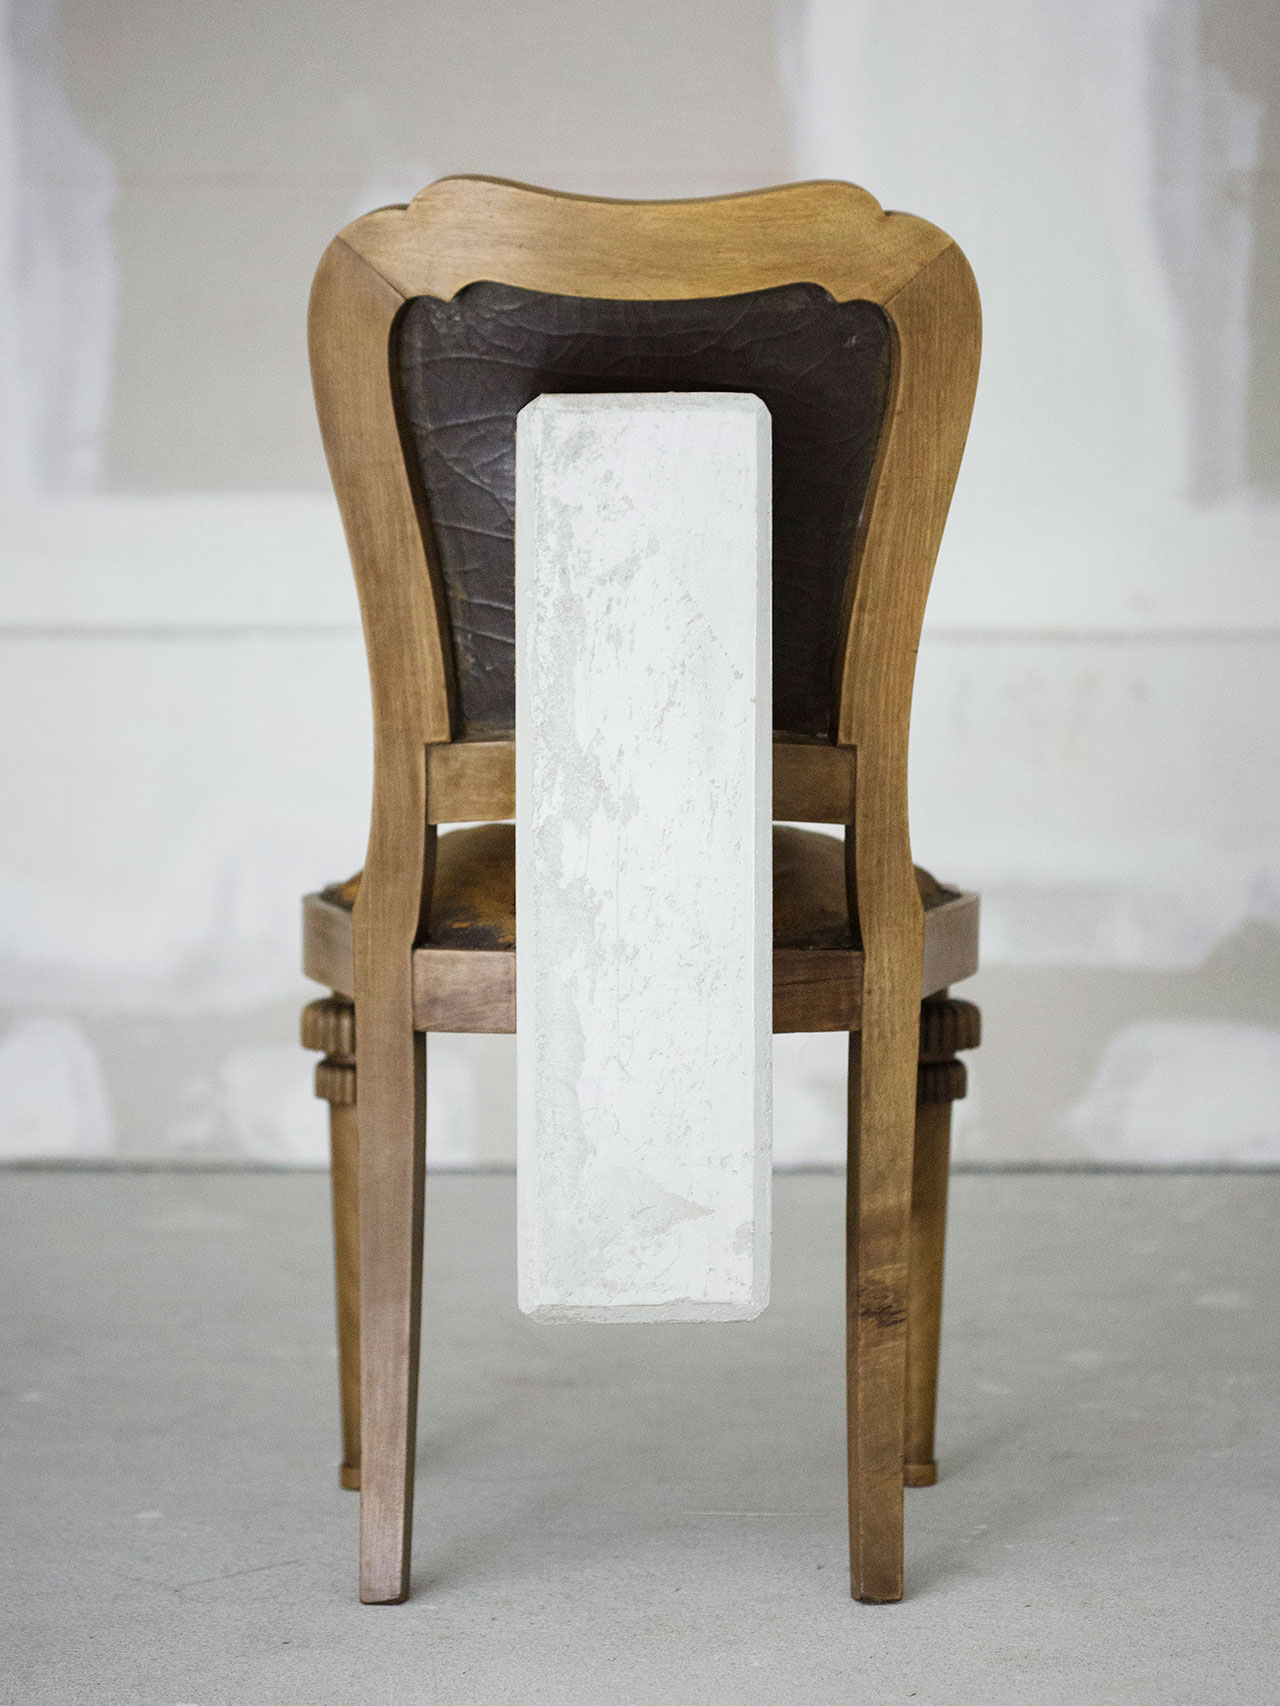 "Nucleo (Piergiorgio Robino + Marzia Ricci), ""Boolean"" And (Chair), 2017. Concrete, vintage furniture, 61 x 49 x 95h cm. Unique piece in an edition 1+1. Photo by Studio Pepe Fotografia."